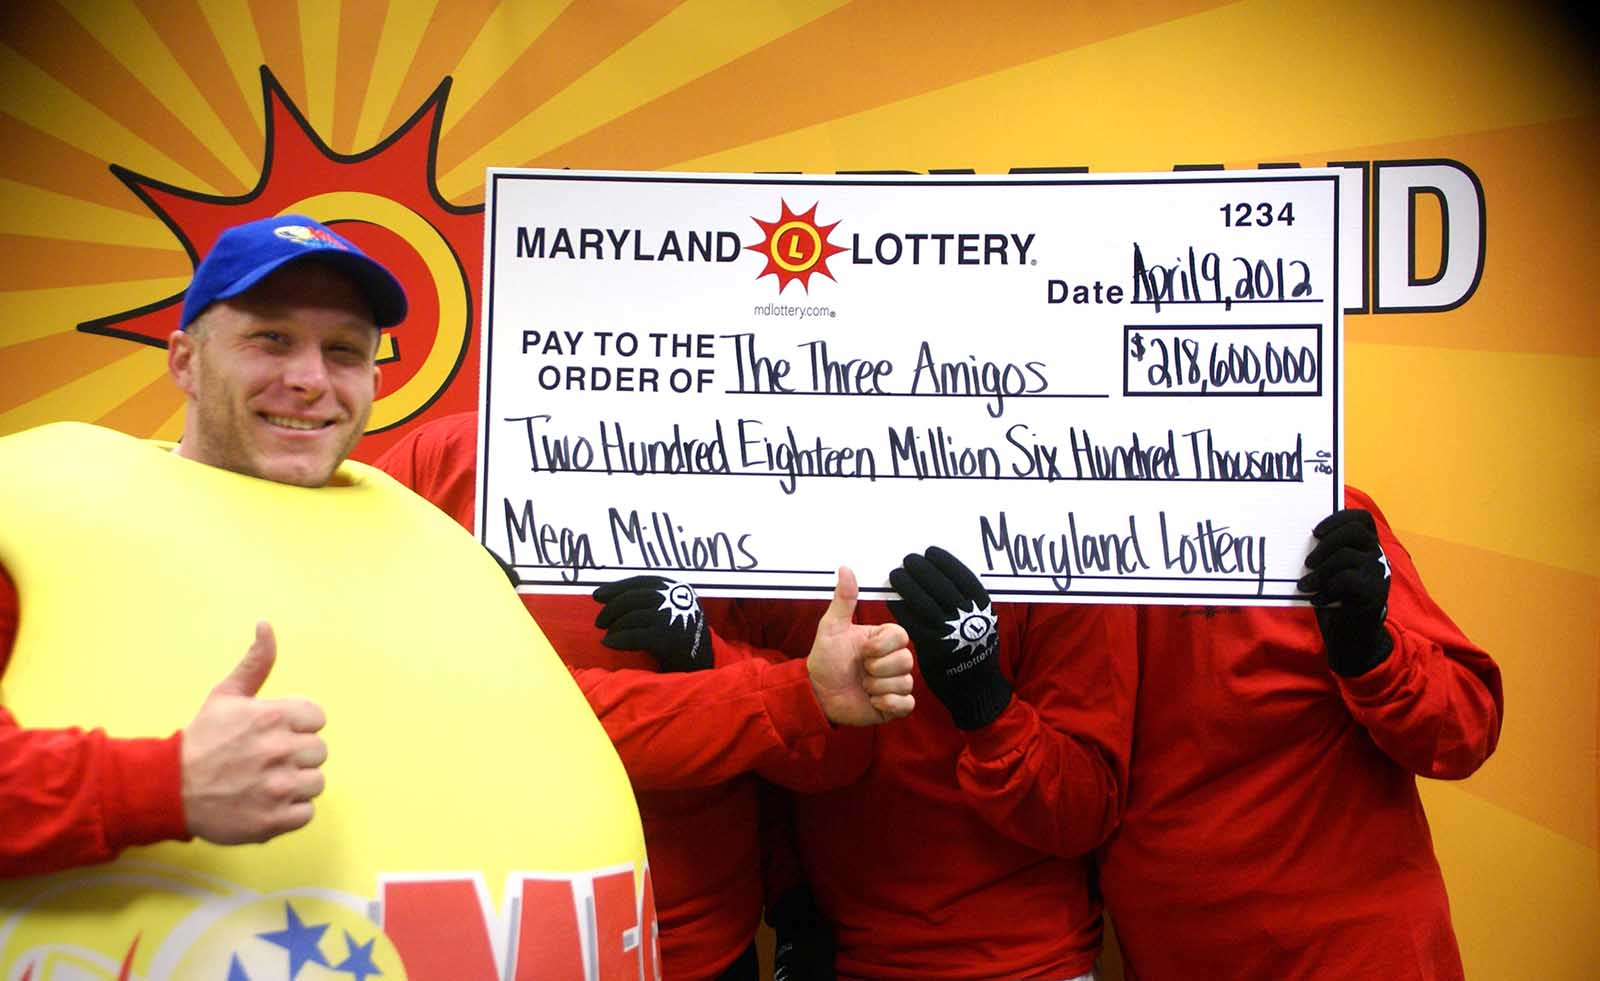 In case you thought most US lottery games were fake, here's some of the real winners of the biggest jackpots in US lottery history.